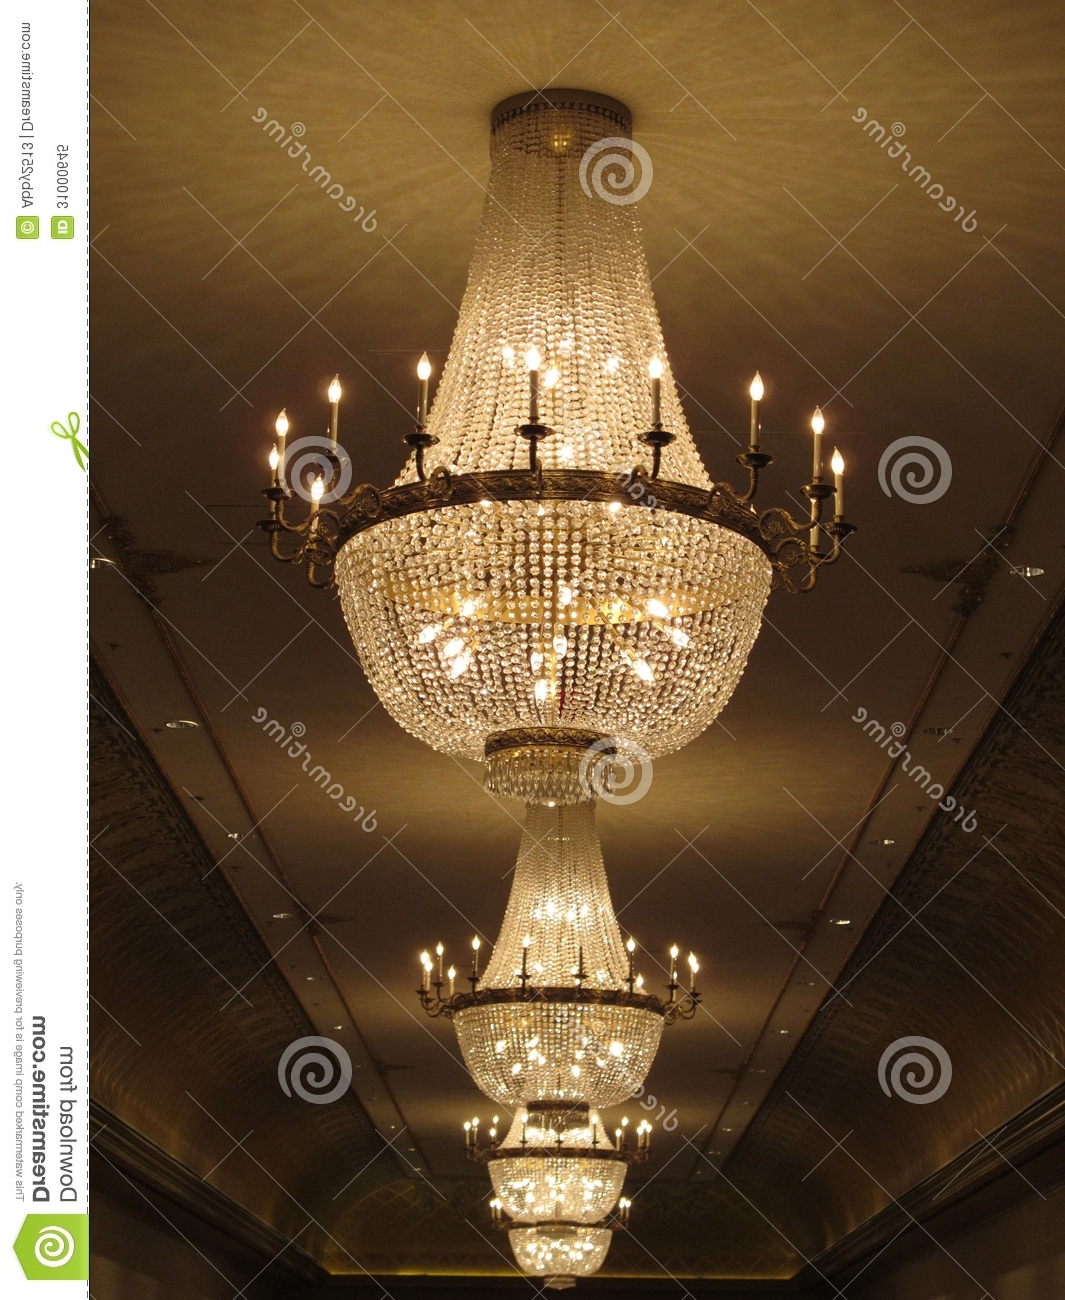 Trendy Huge Crystal Chandeliers With Gorgeous Crystal Chandelier Stock Image – Image Of Candles, Assets (View 11 of 15)